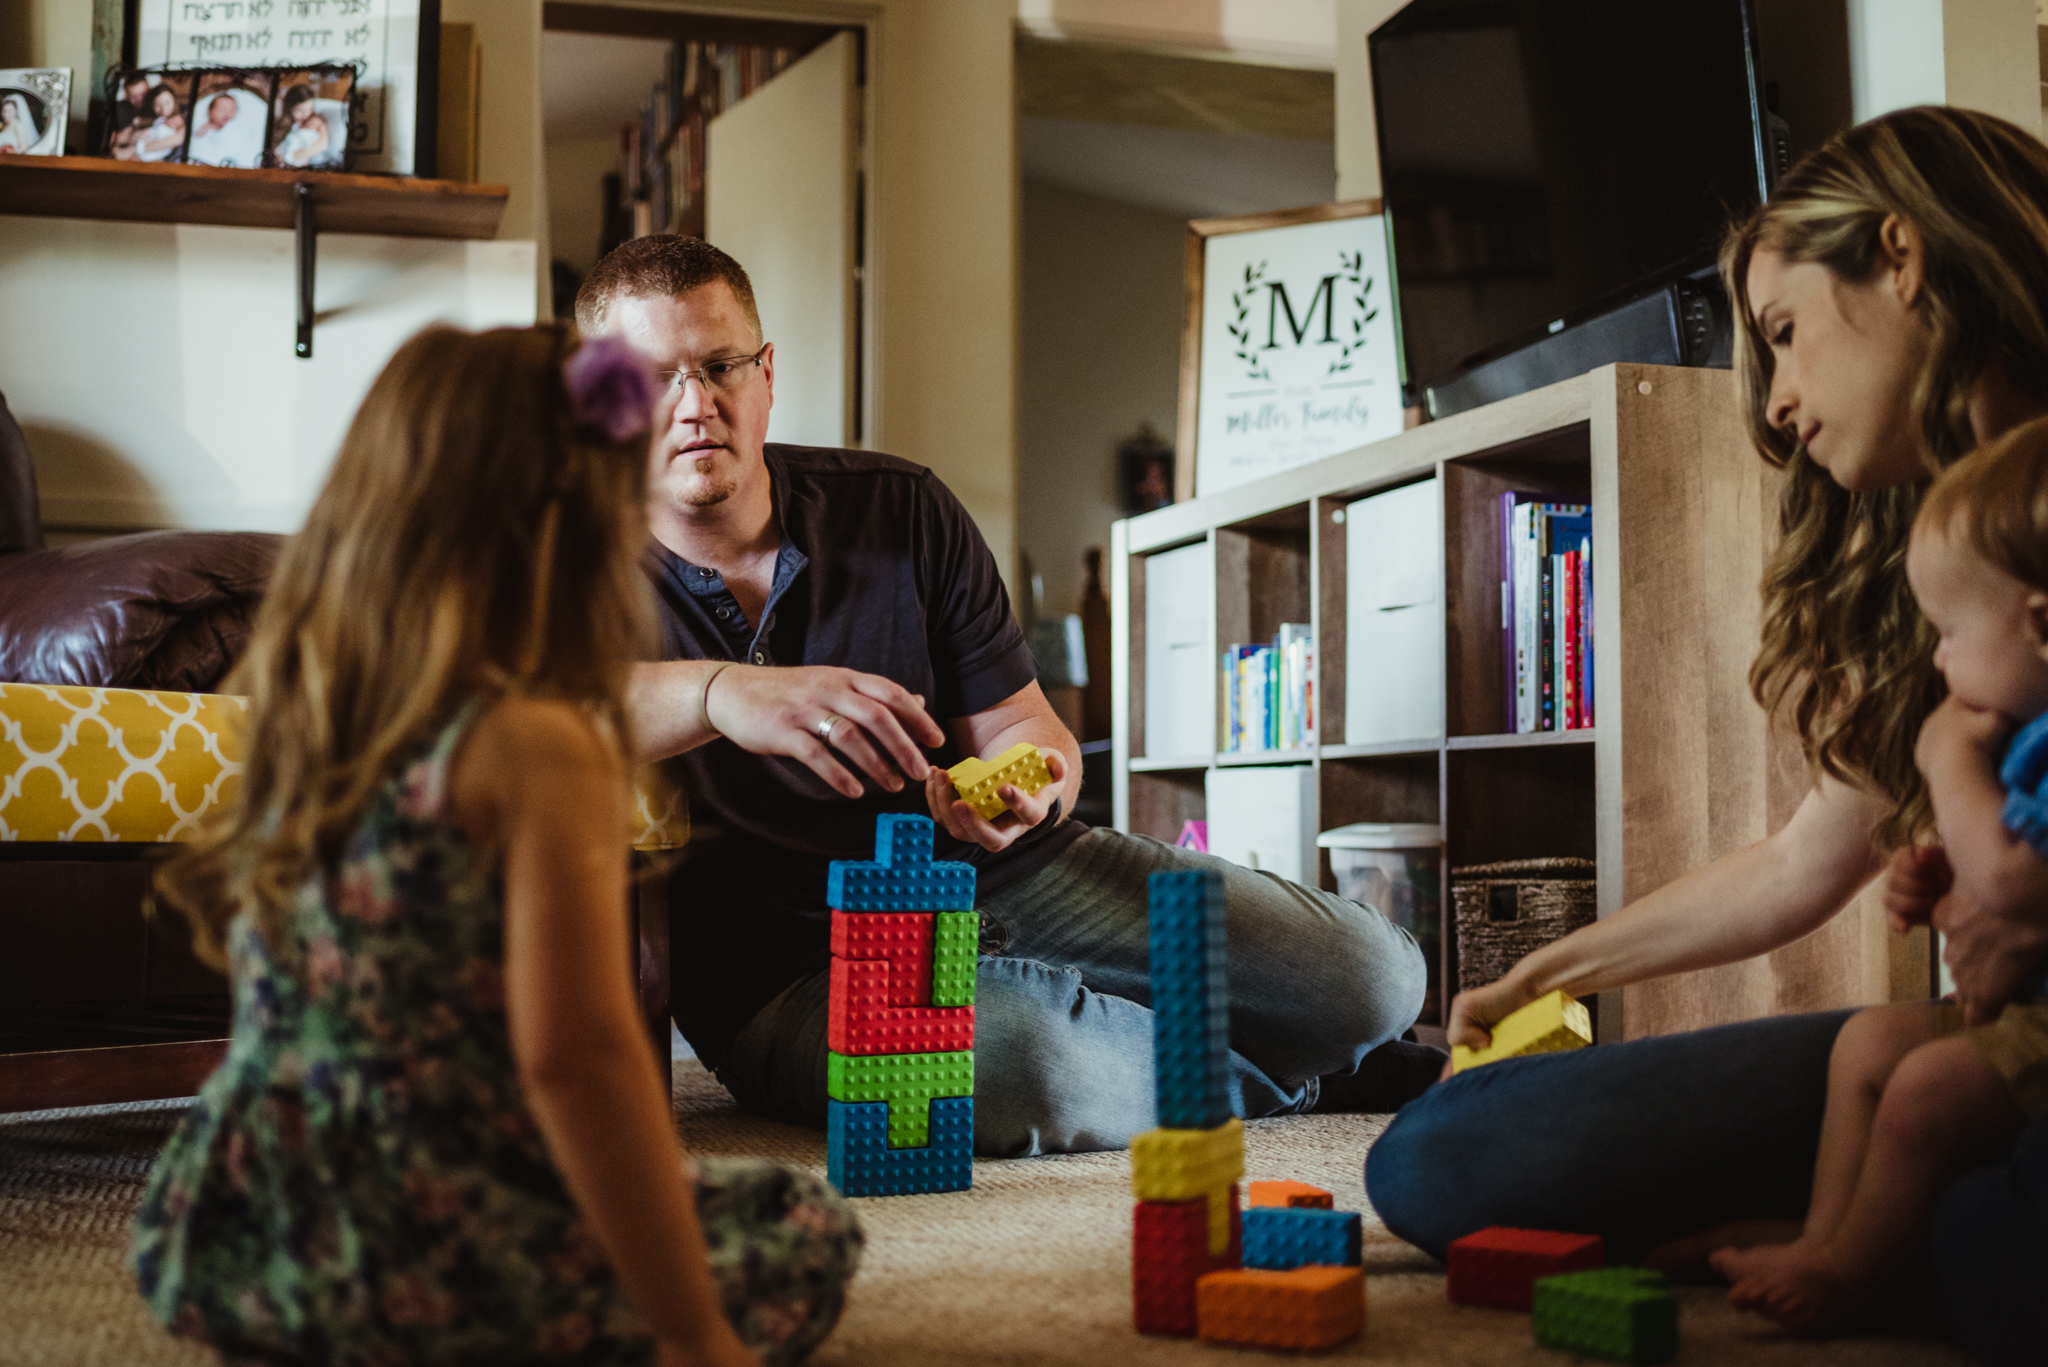 The family plays blocks together in the living room during their lifestyle session at home in Wake Forest with Rose Trail Images.